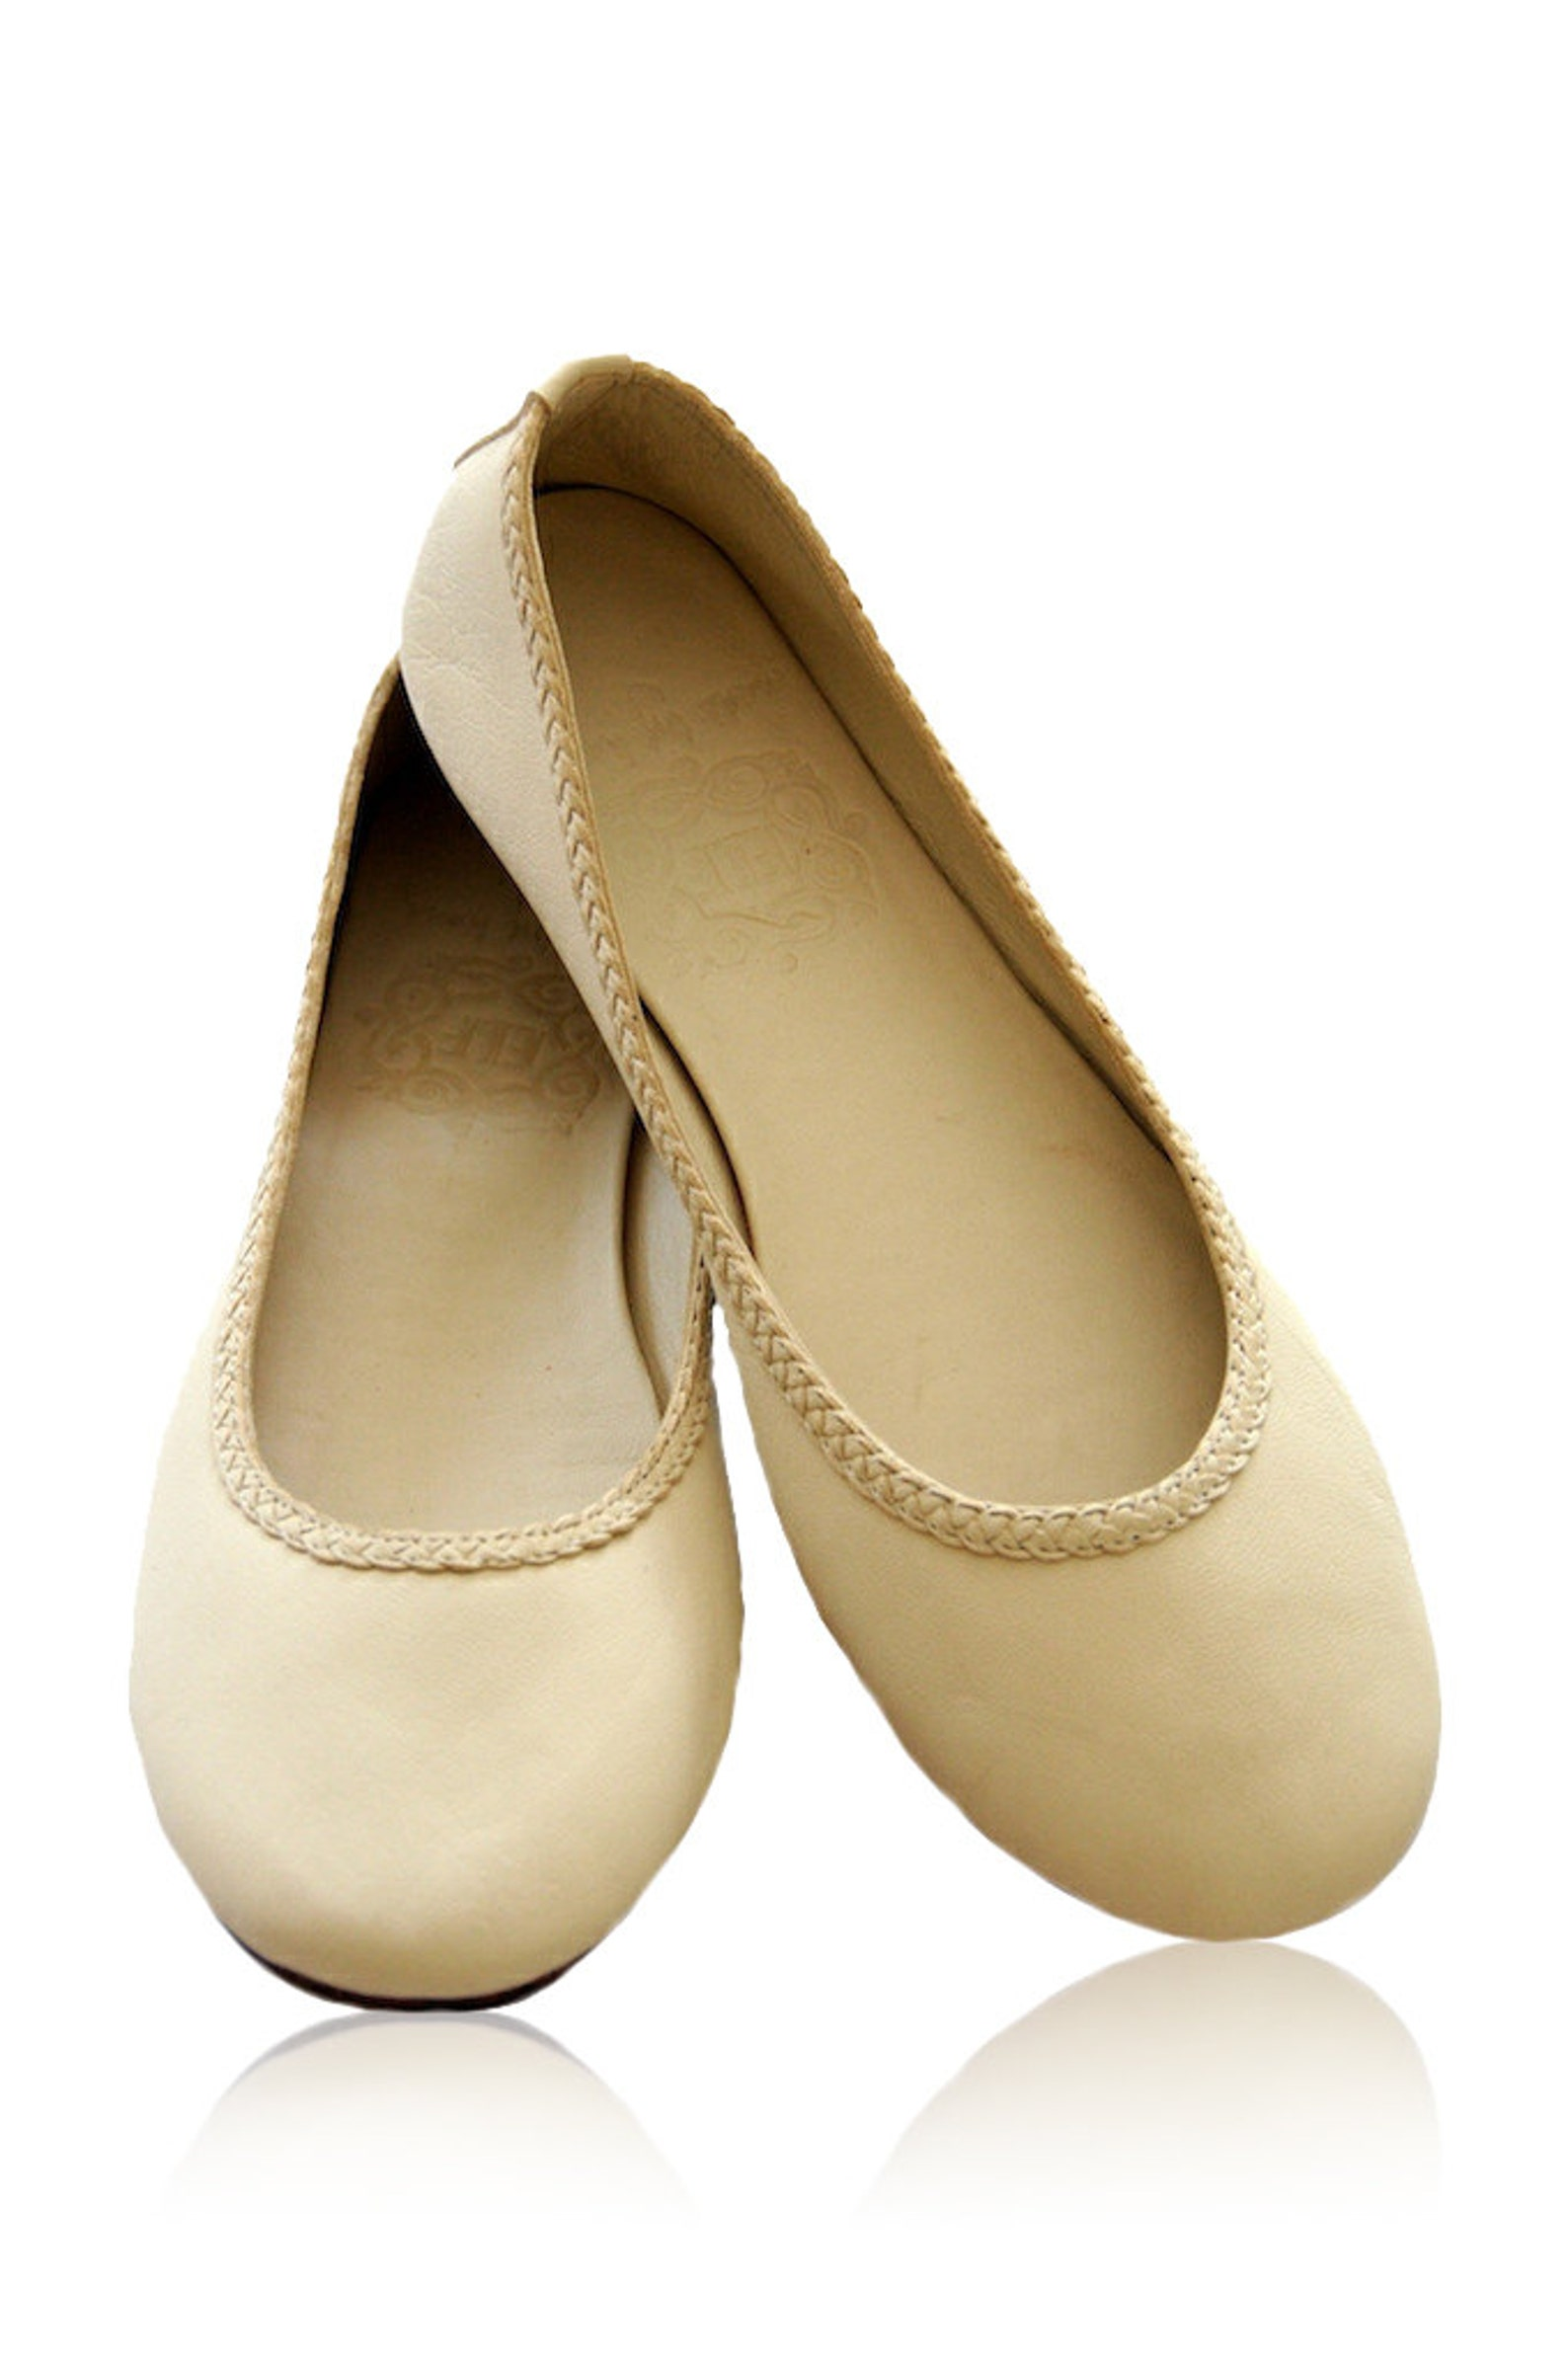 aisÉ. ivory womens shoes / leather ballet flats / bridal shoes / wedding shoes / leather flat shoes. available in different leat